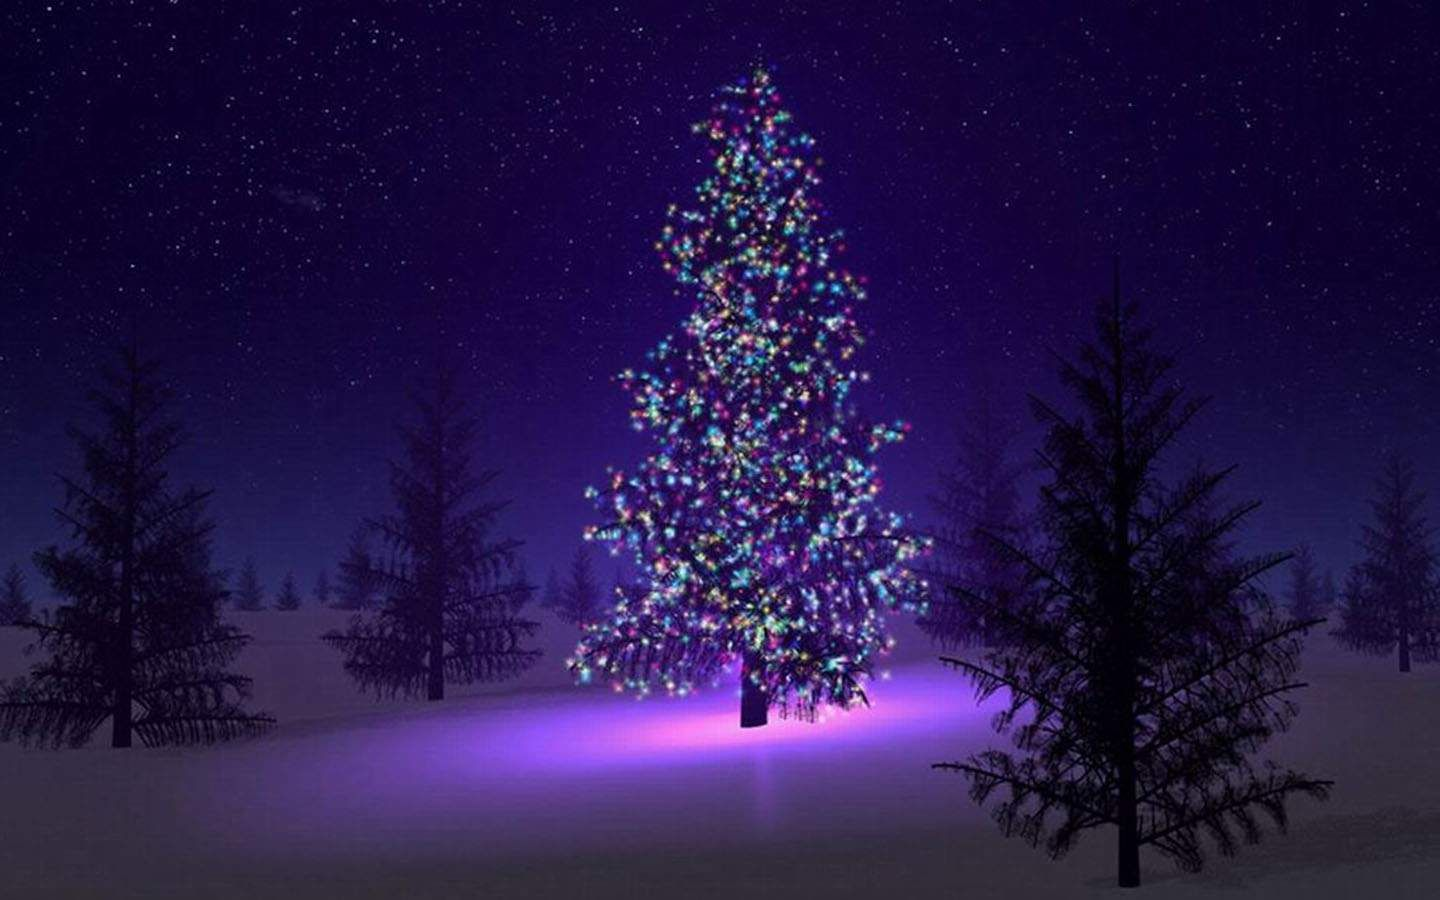 Free Christmas Wallpaper Backgrounds Christmas Wallpaper for